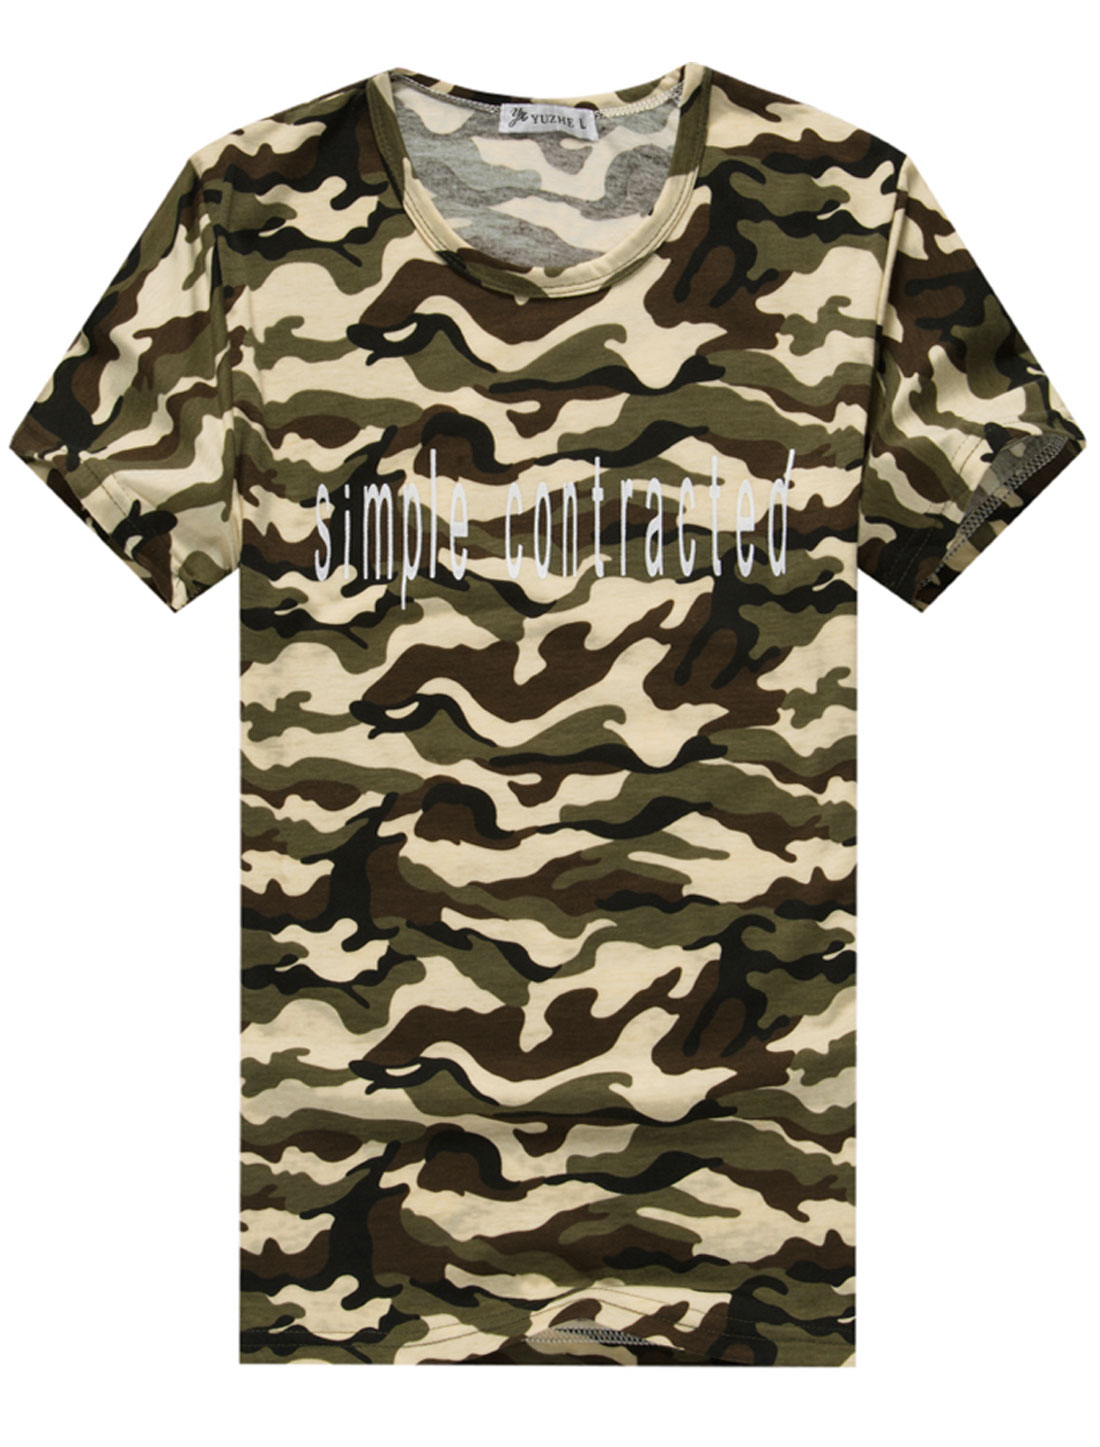 Man's Round Neck Short Sleeve Camouflage Pattern Letter Print Tee Shirt Multicolor M